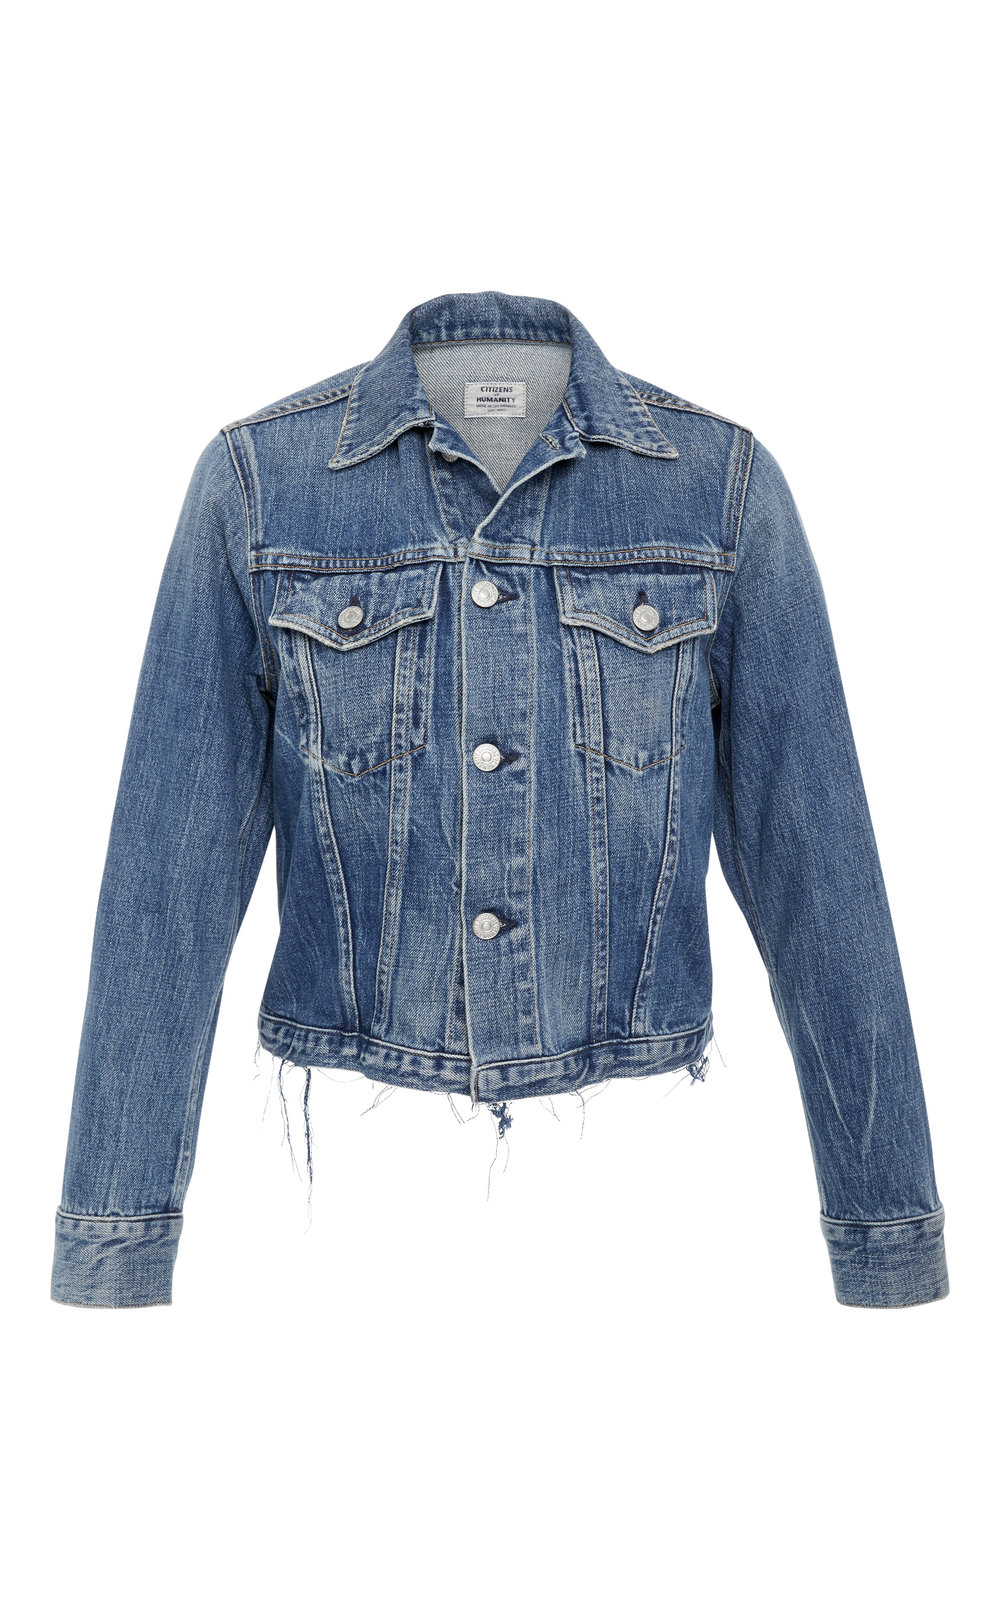 denim CoH jacket.jpg